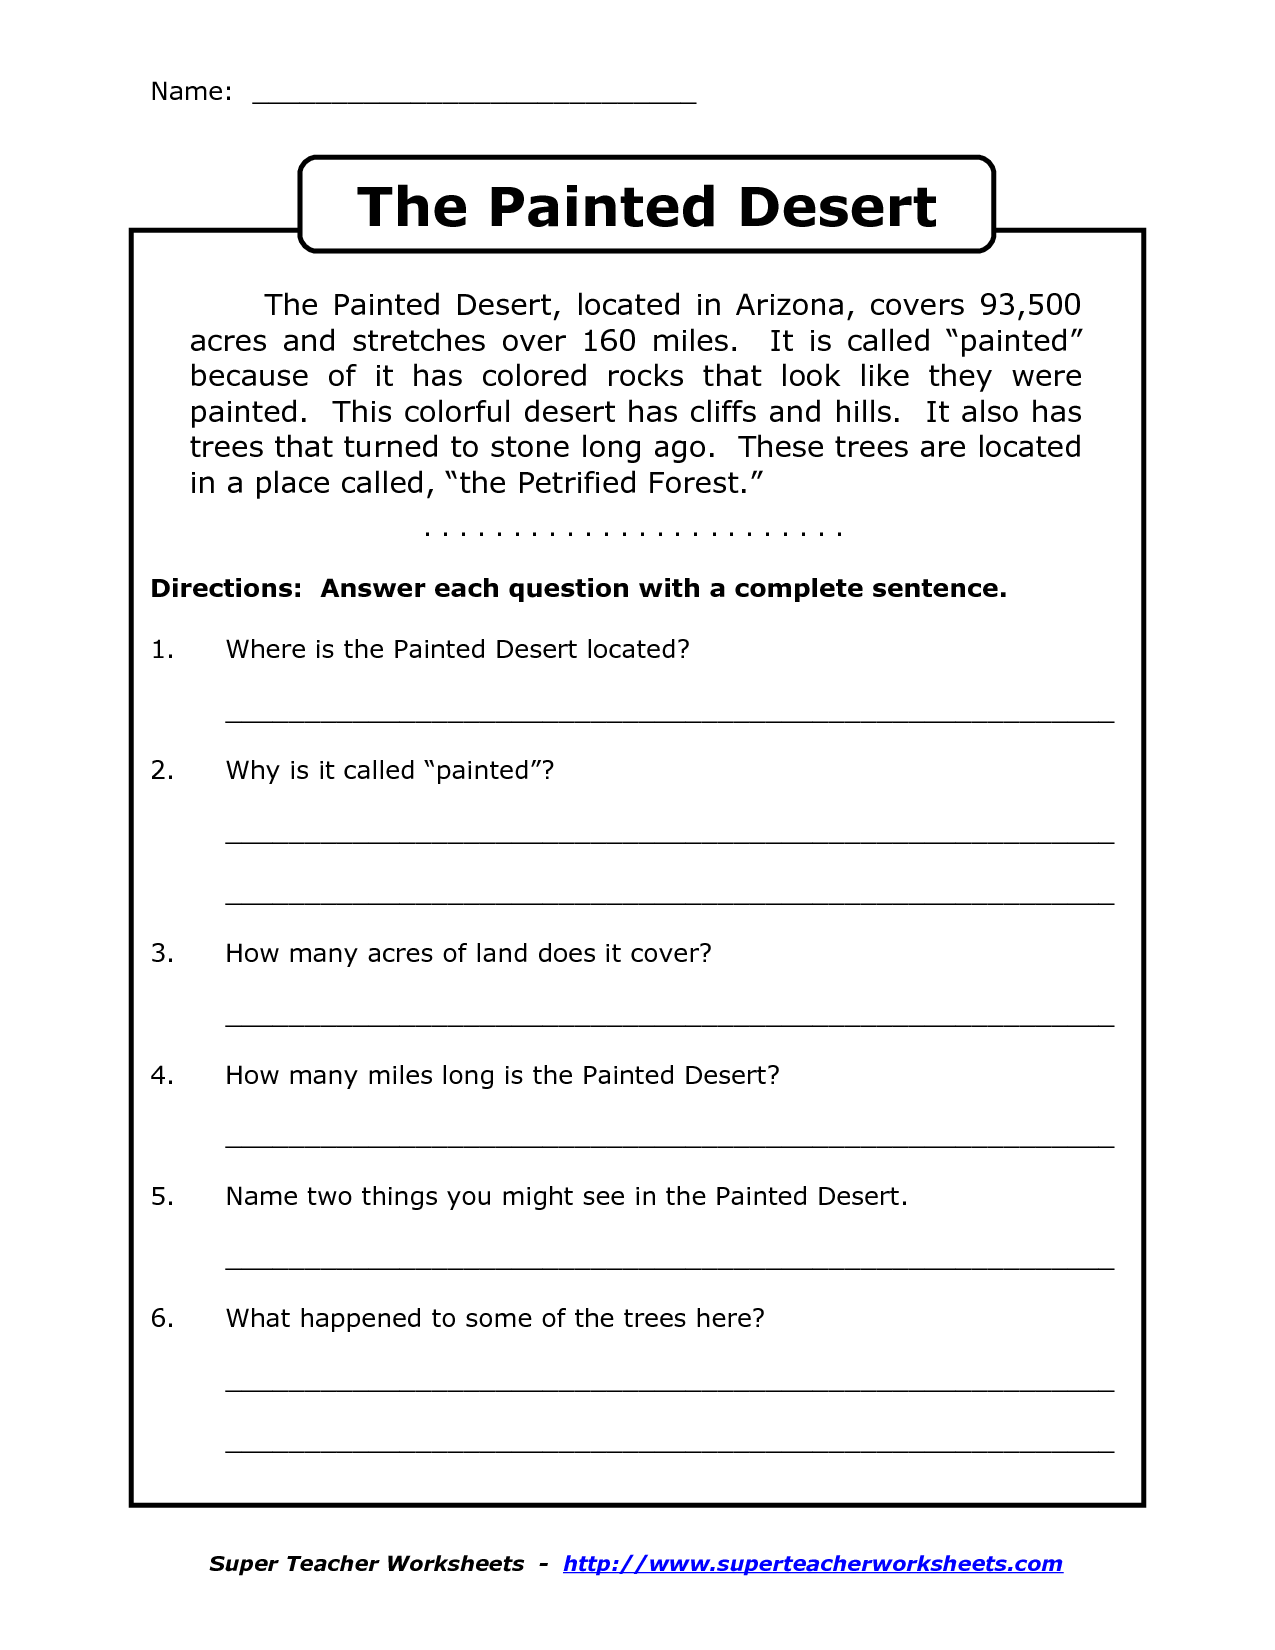 Worksheets 4th Grade Reading Comprehension Worksheets reading worksheets for 4th grade comprehension 3 name the painted desert